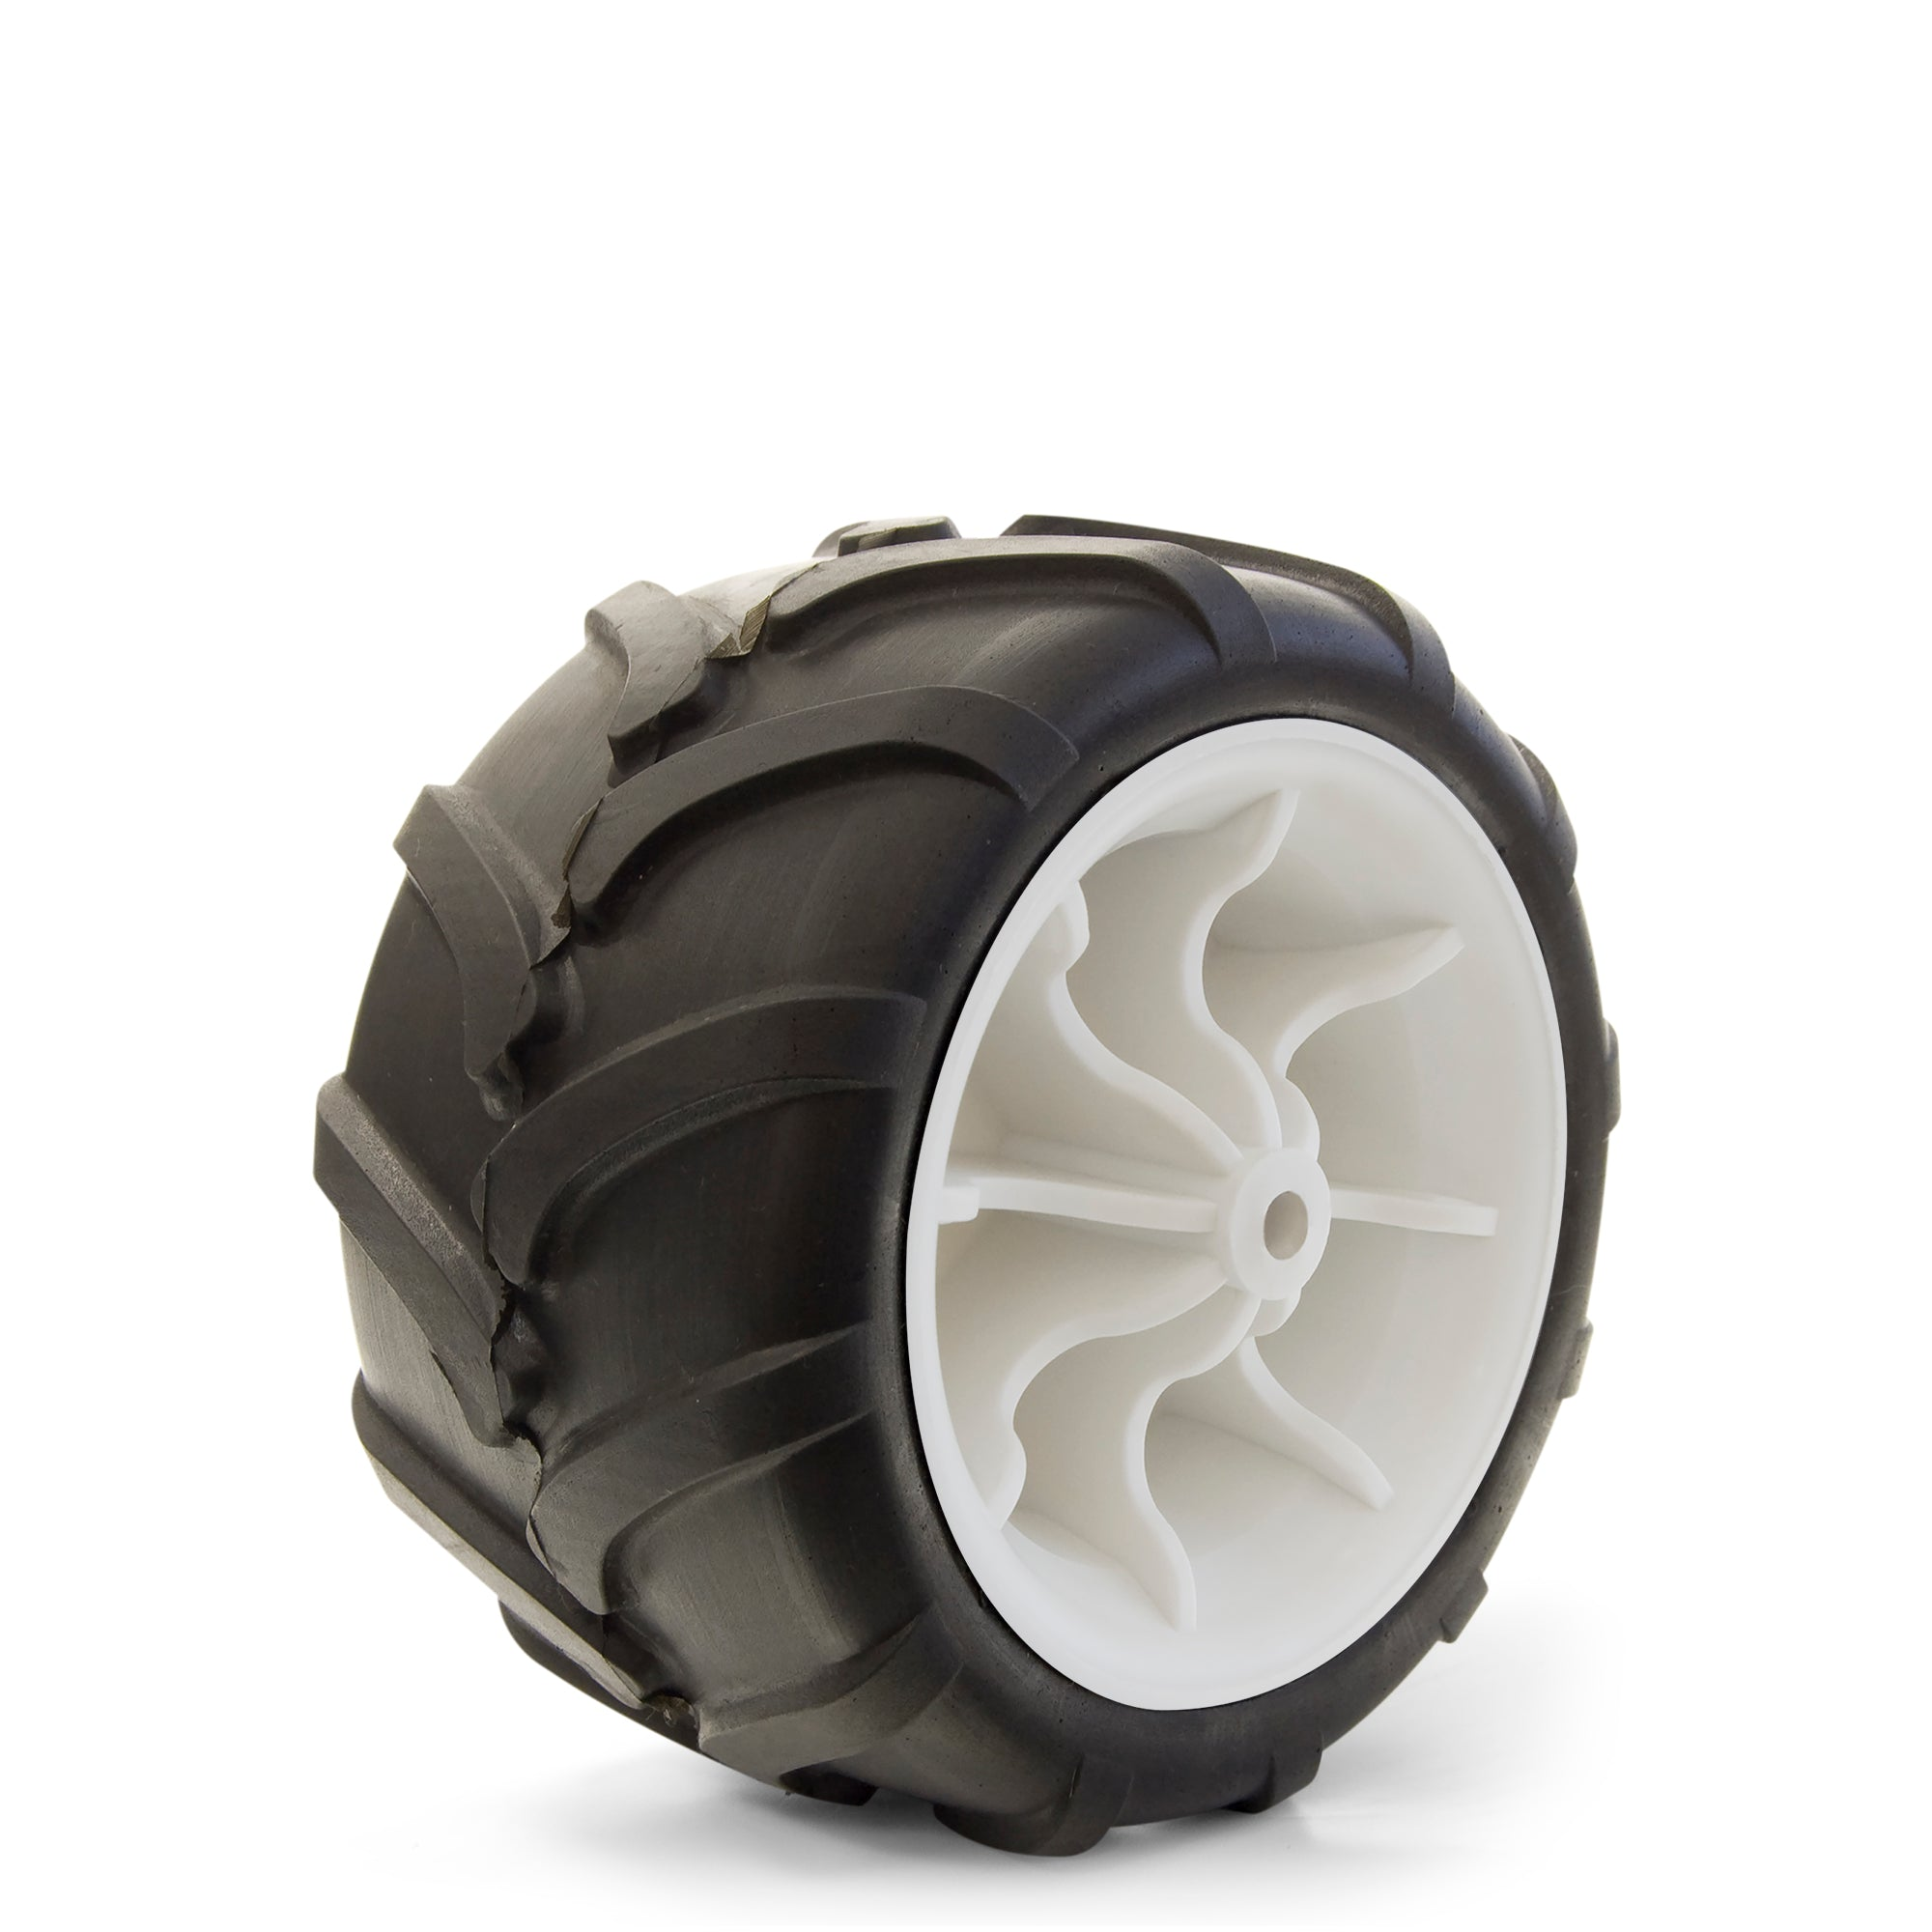 All-Terrain Folding Wagon Wheel Black/White